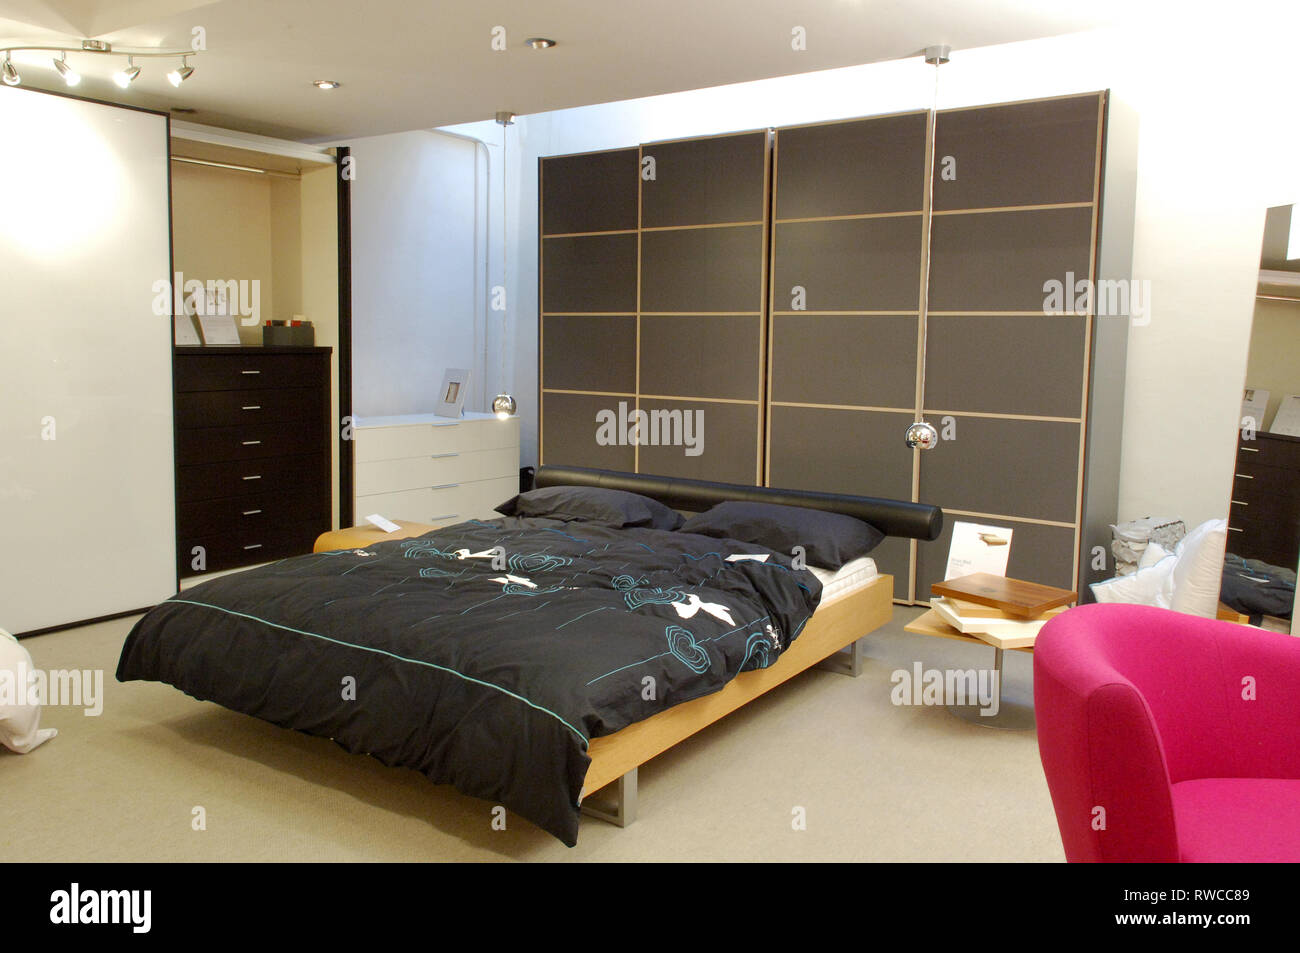 Contemporary Bedroom Furniture For Sale In A Furniture Shop Stock Photo Alamy